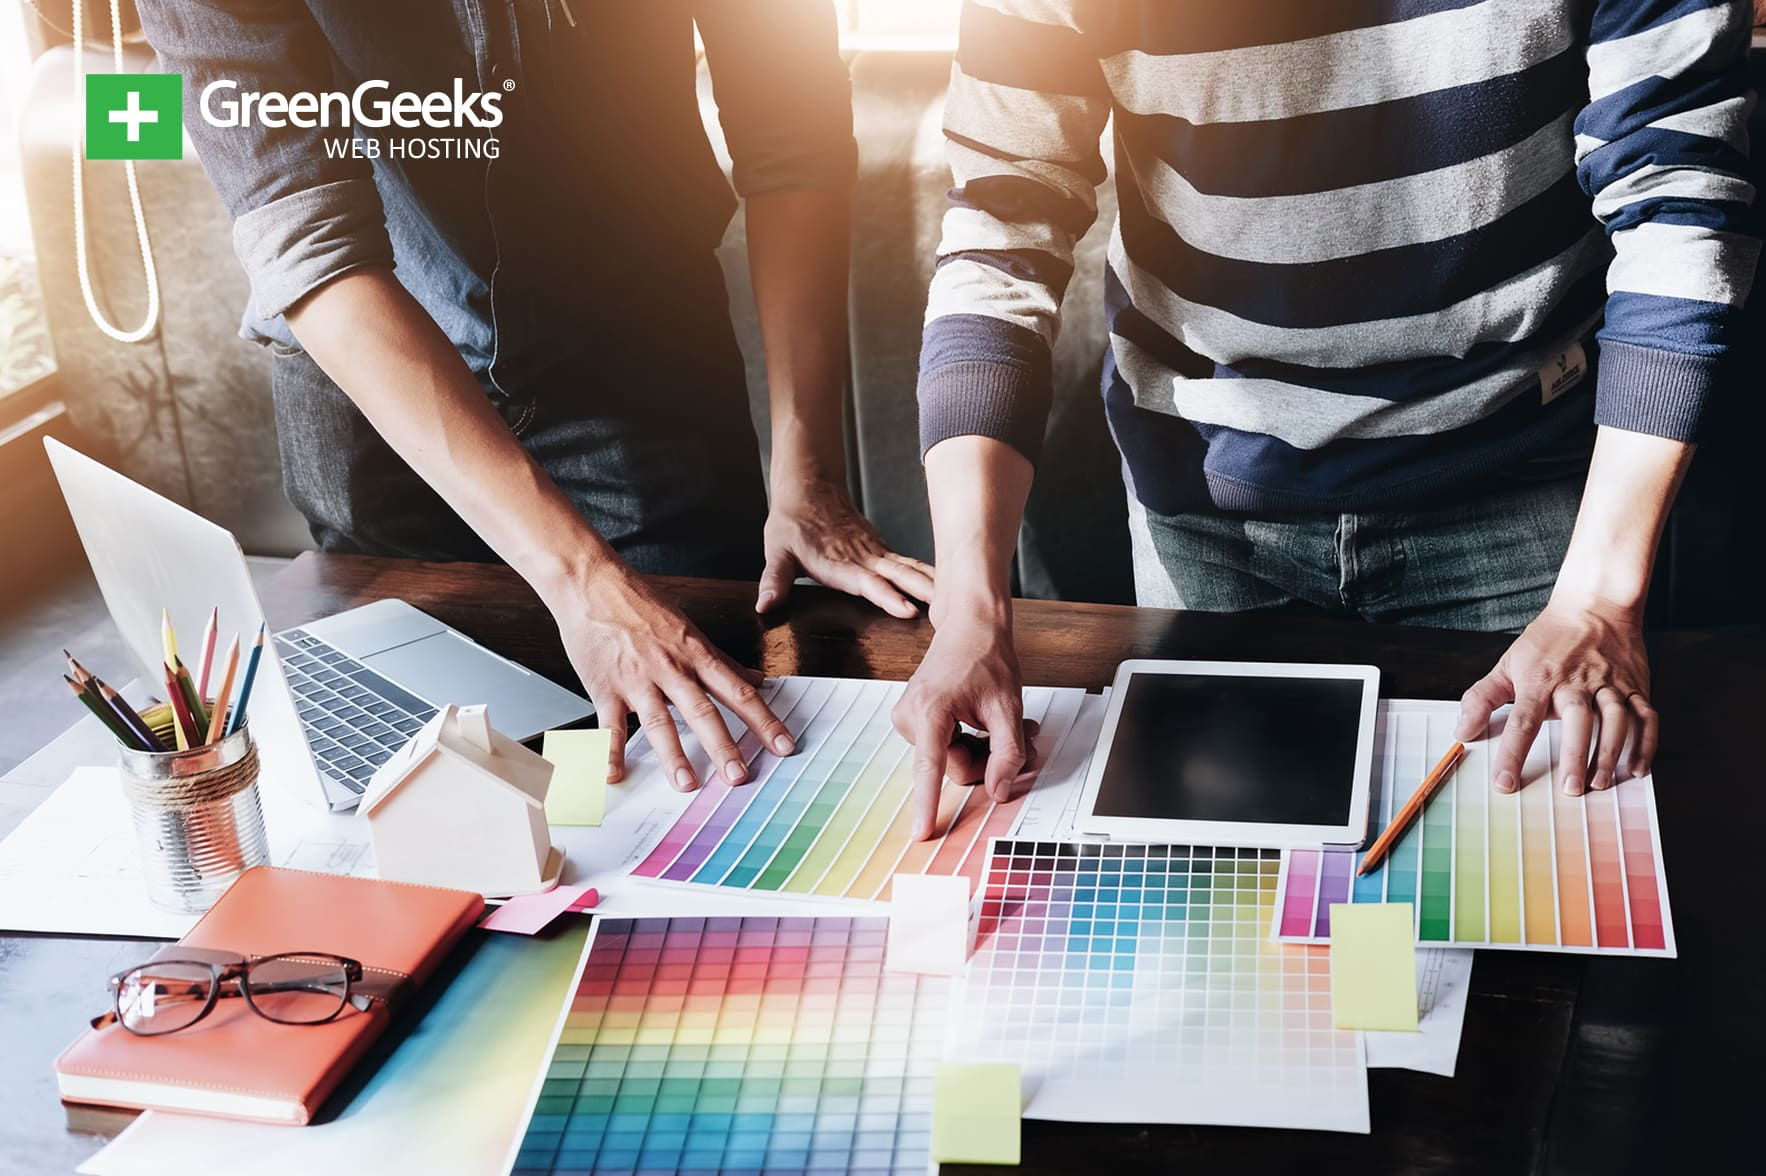 13 Free Web Design Tools You Never Knew About